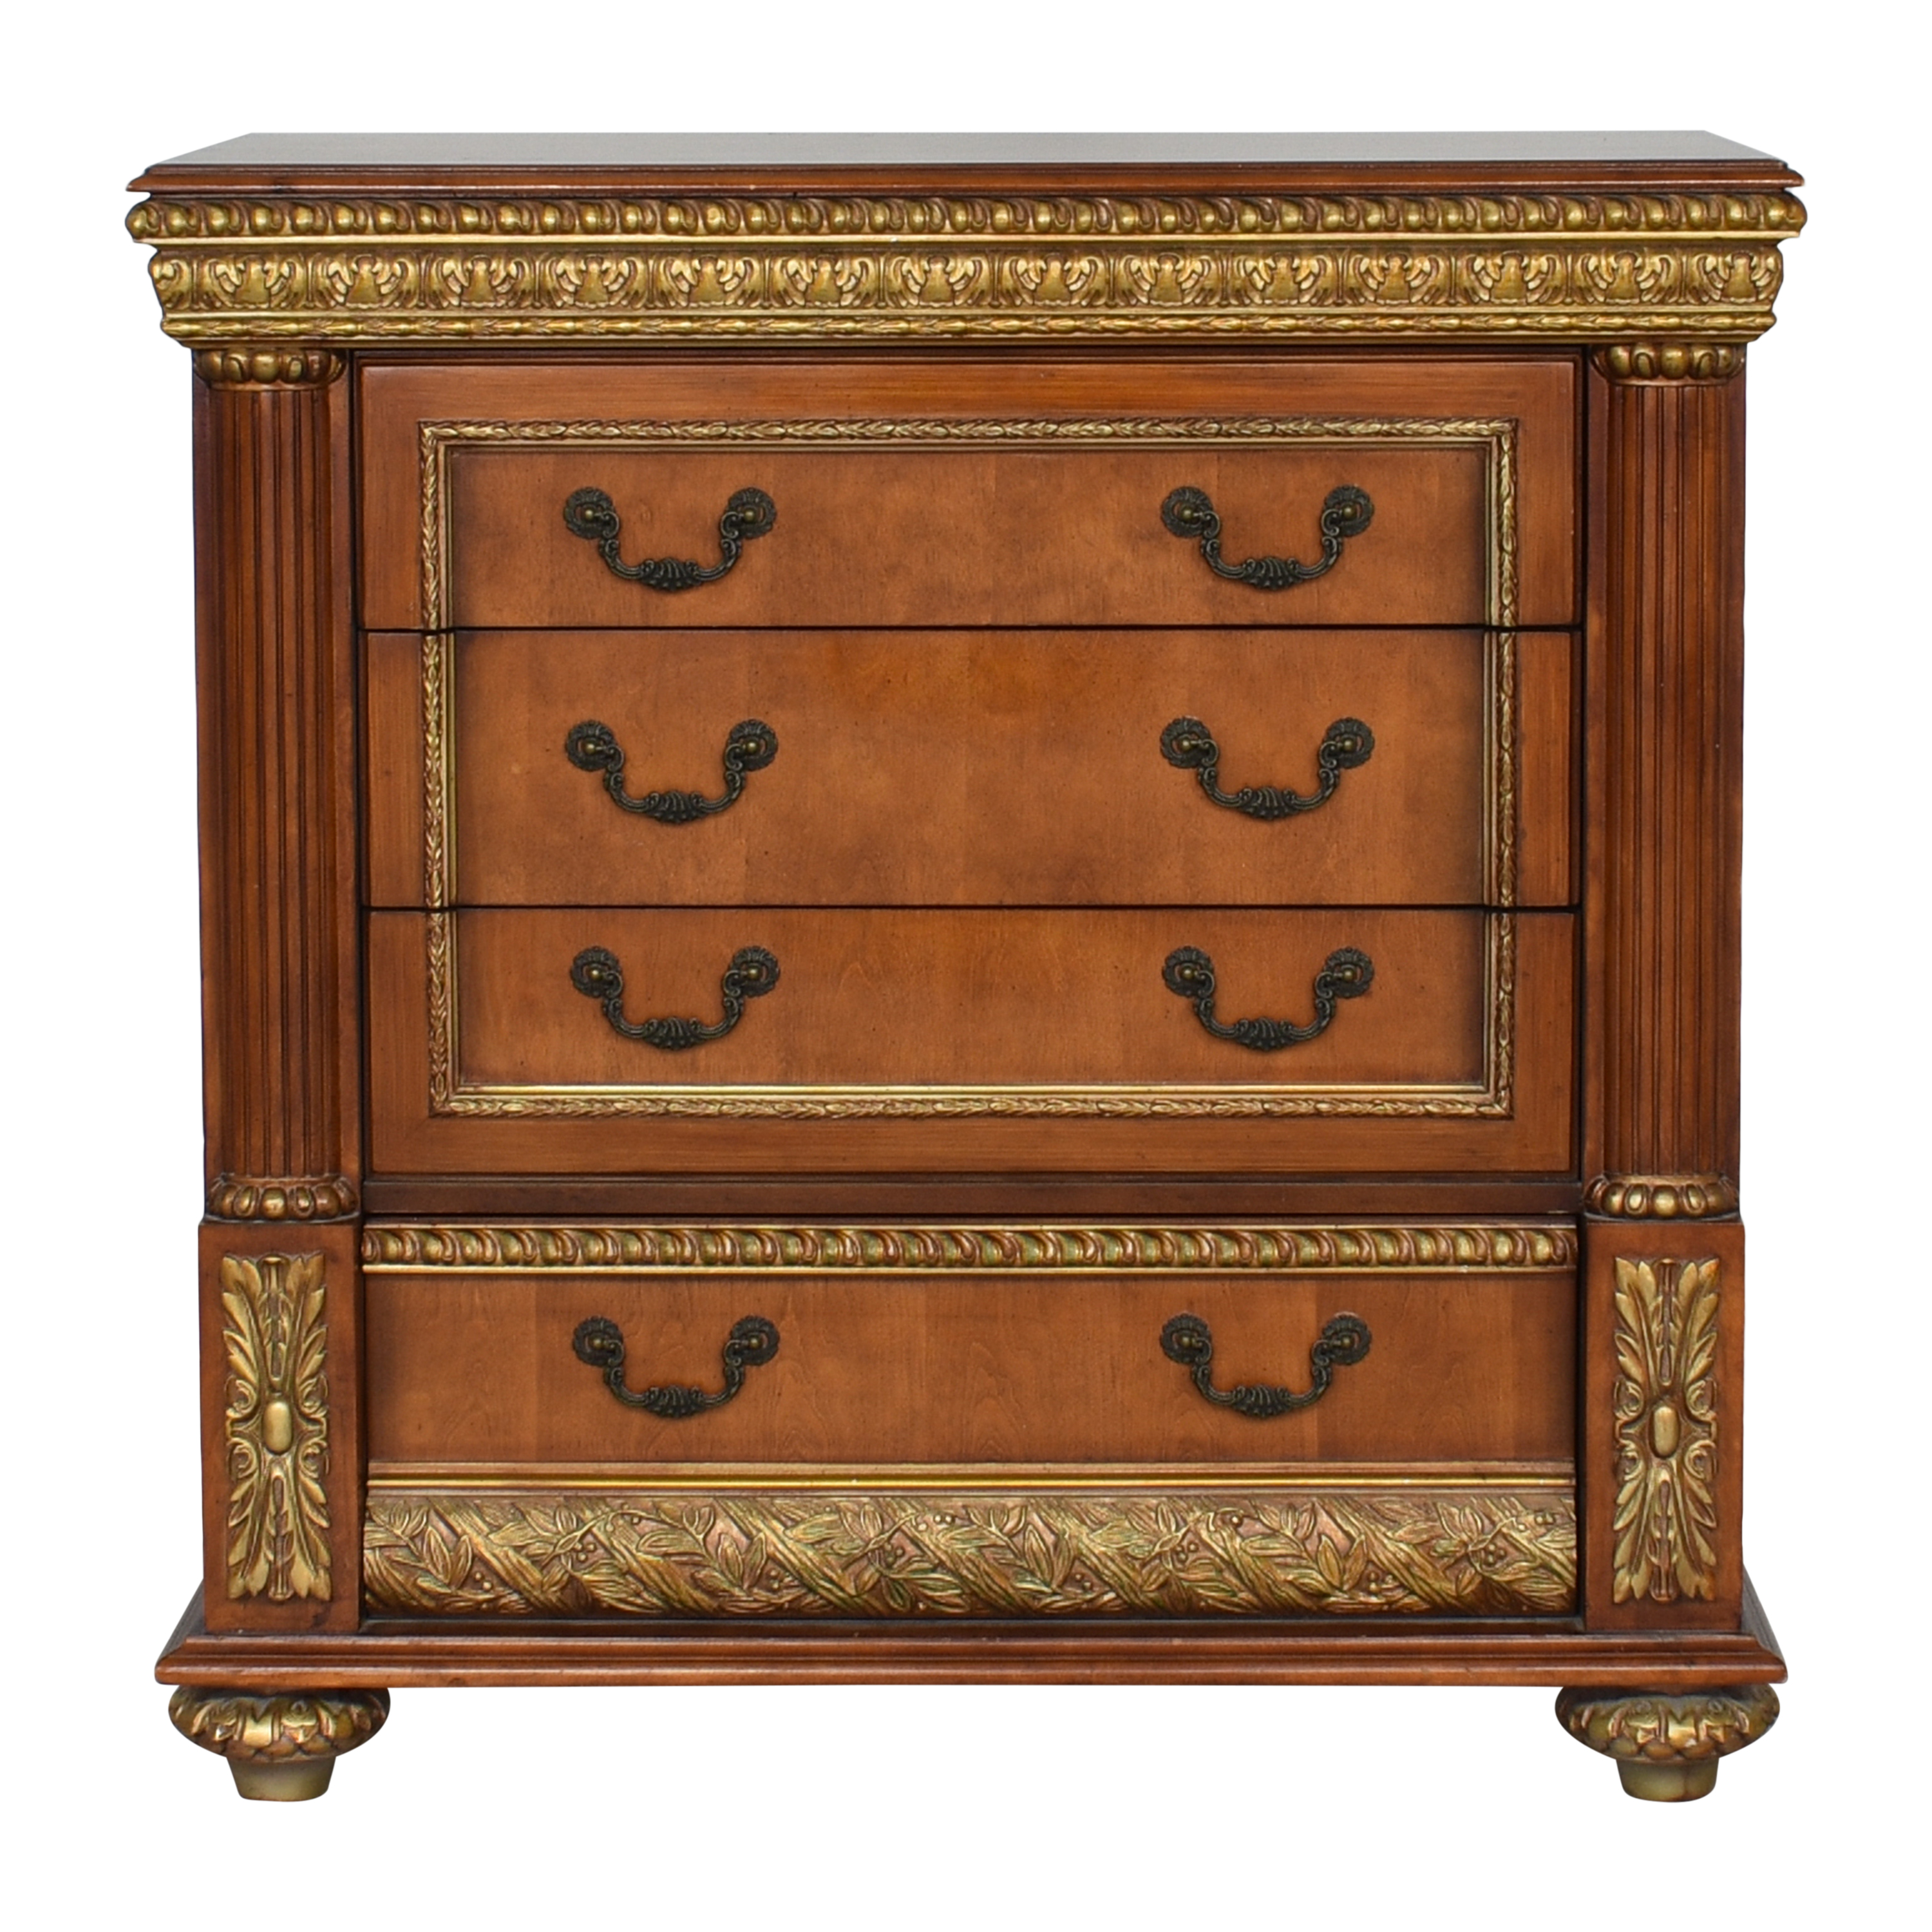 Horchow Horchow Bellissimo Bachelor's Chest